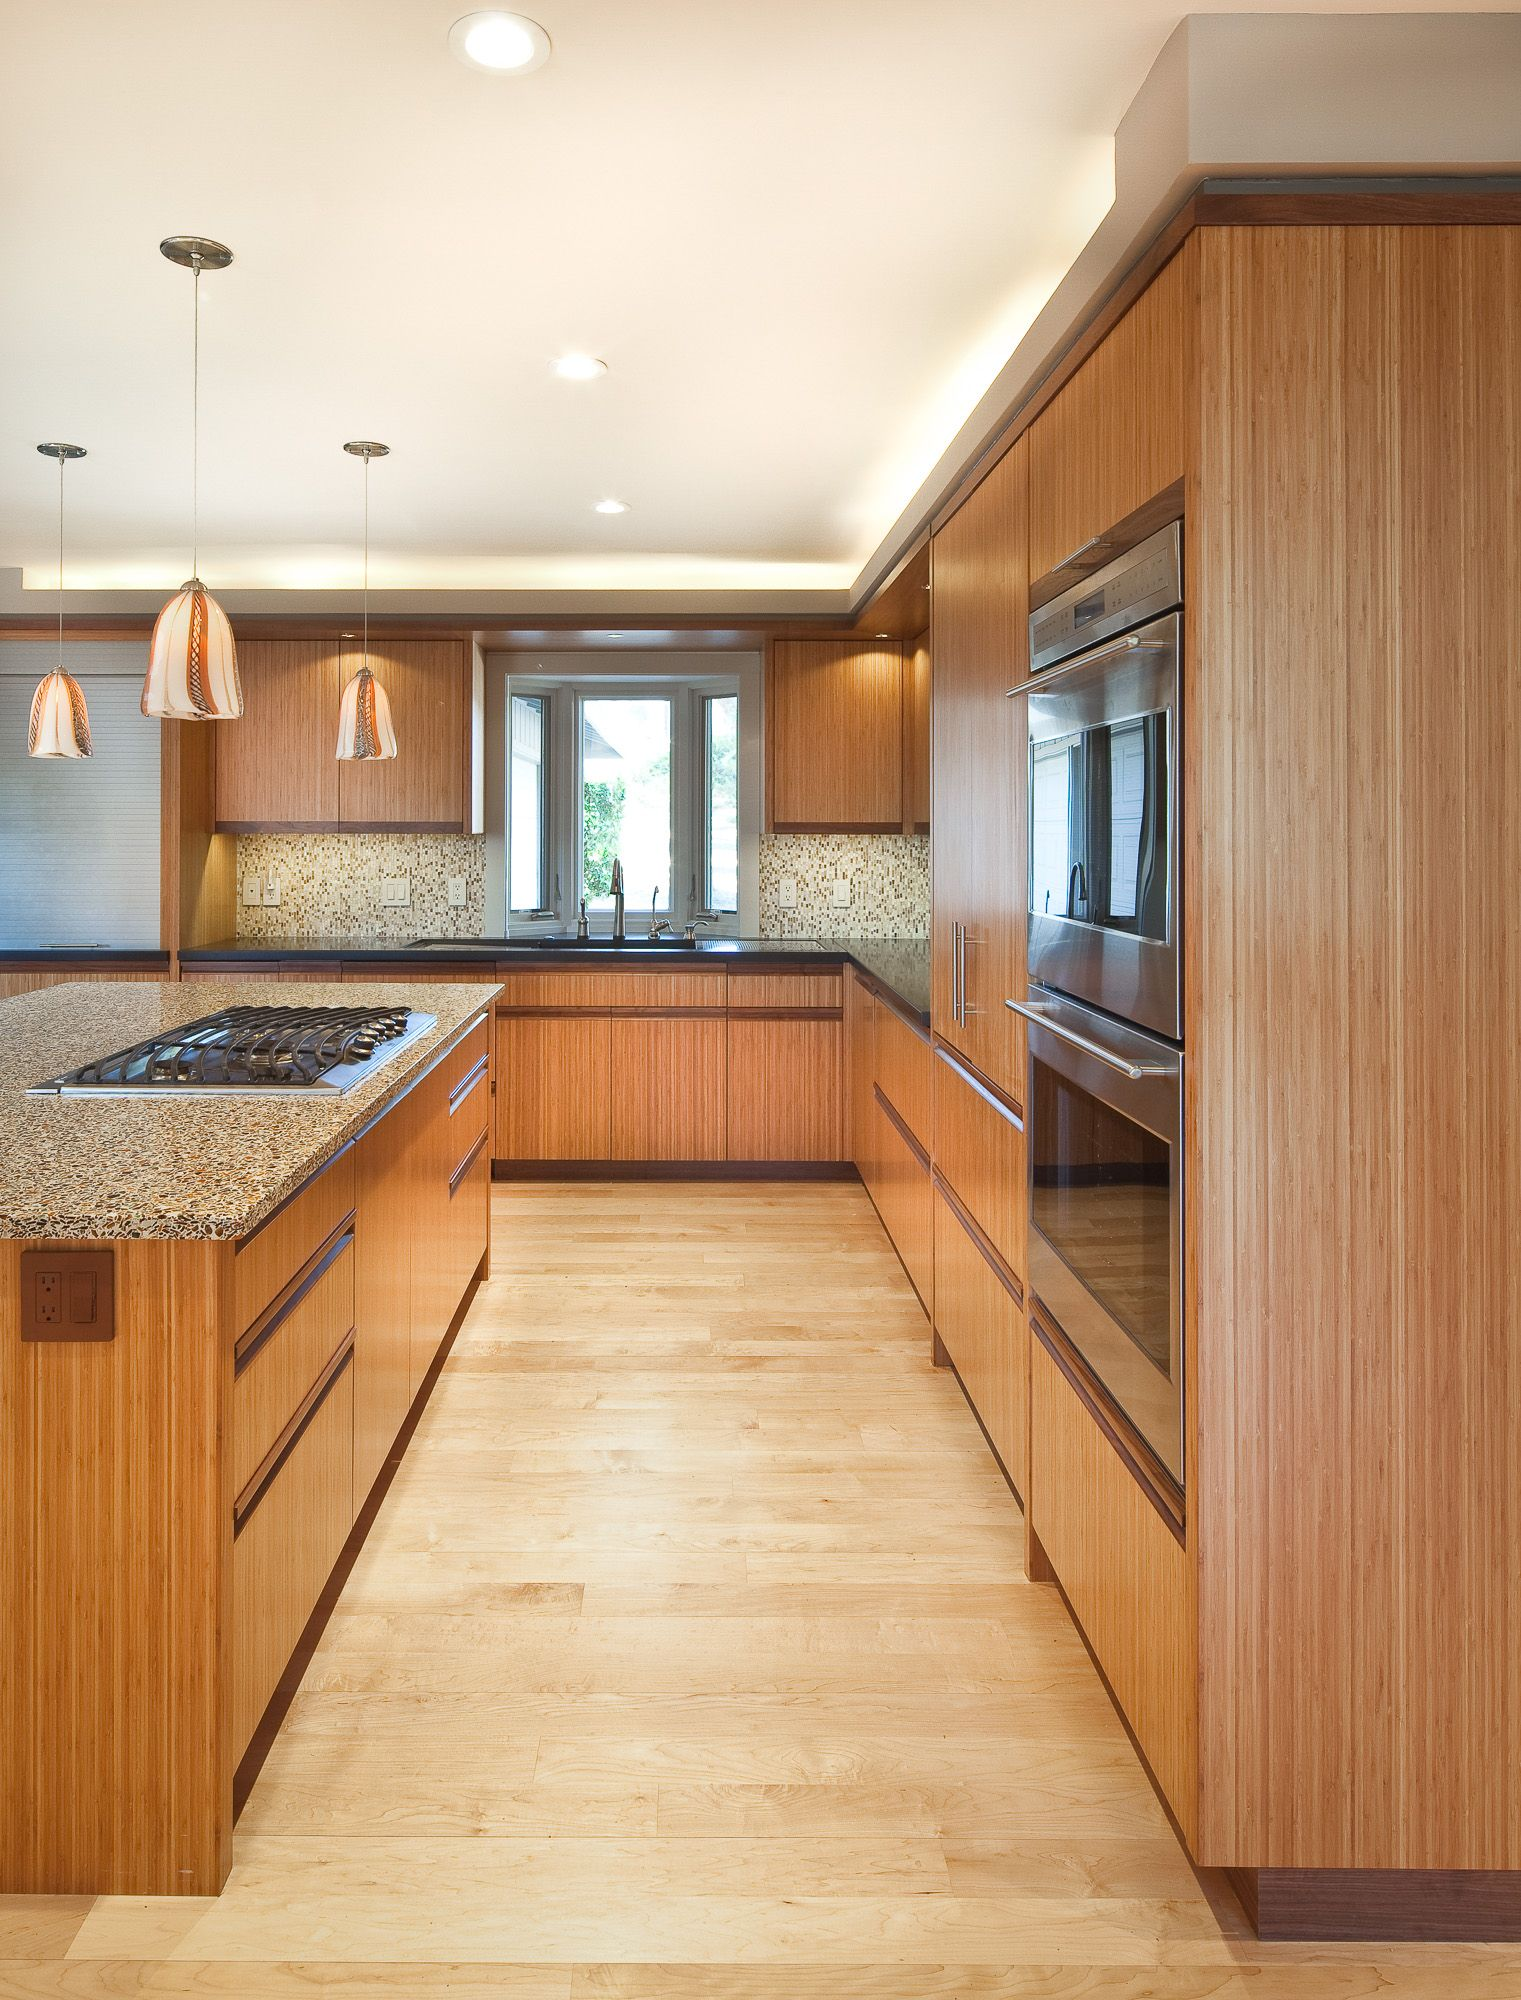 Bamboo Kitchen Cabinet By Berkeley Mills Kitchen Bamboo Cabinets Cabinet Custom Flooring Wooden Kit In 2020 Bamboo Kitchen Cabinets Kitchen Flooring Kitchen Cabinets